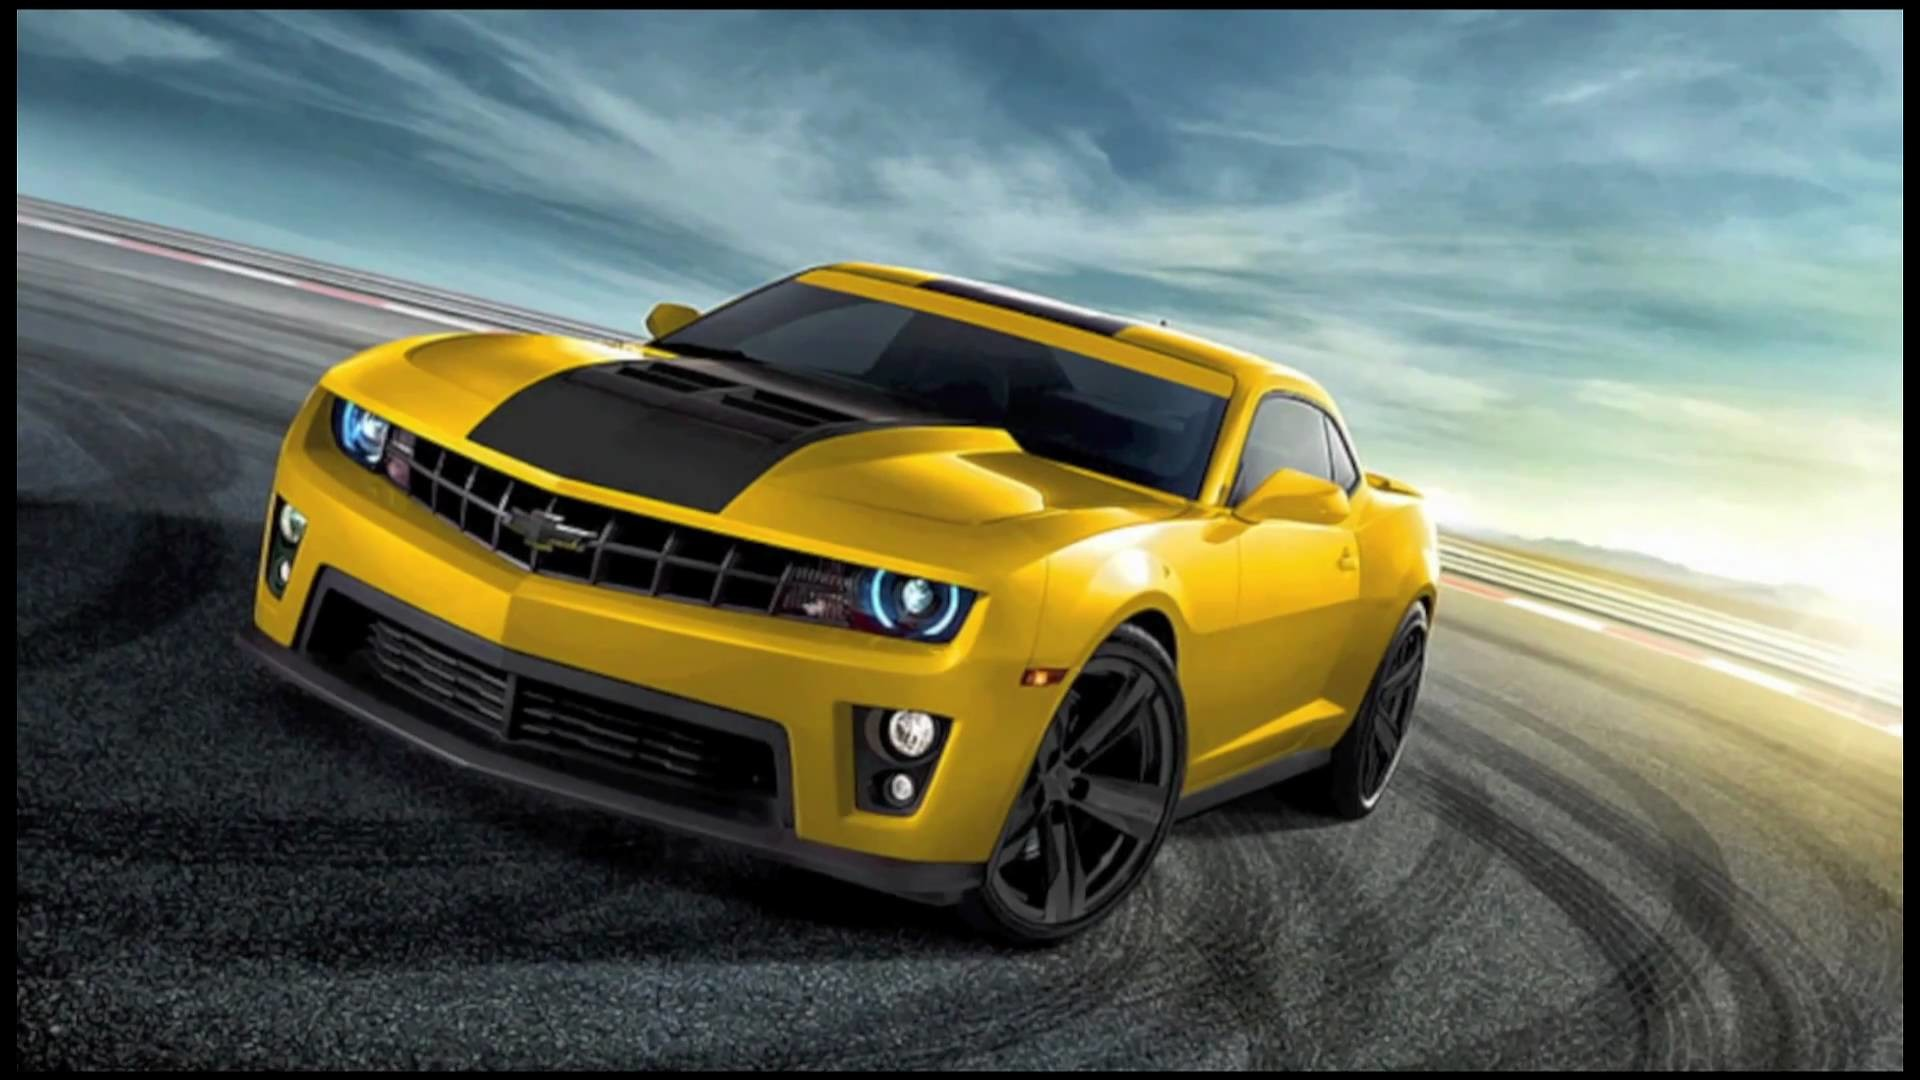 Chevy Camaro ZL1 Full hd wallpapers Chevy Camaro ZL1 For mobile